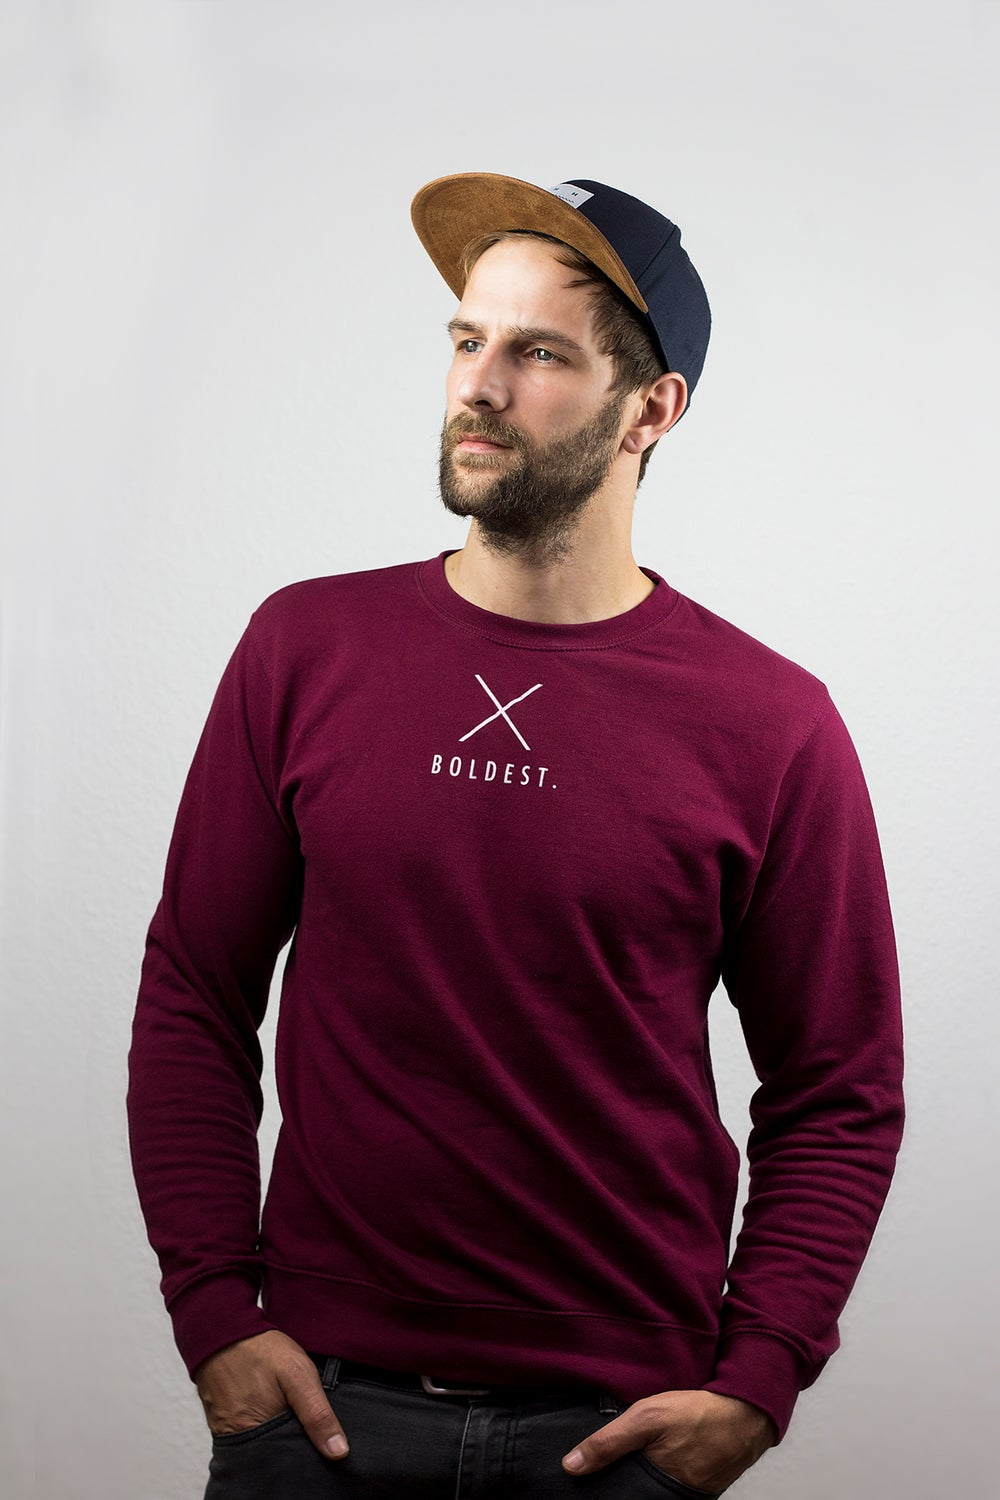 Image of TOP OUT Mens Sweatshirt burgundy